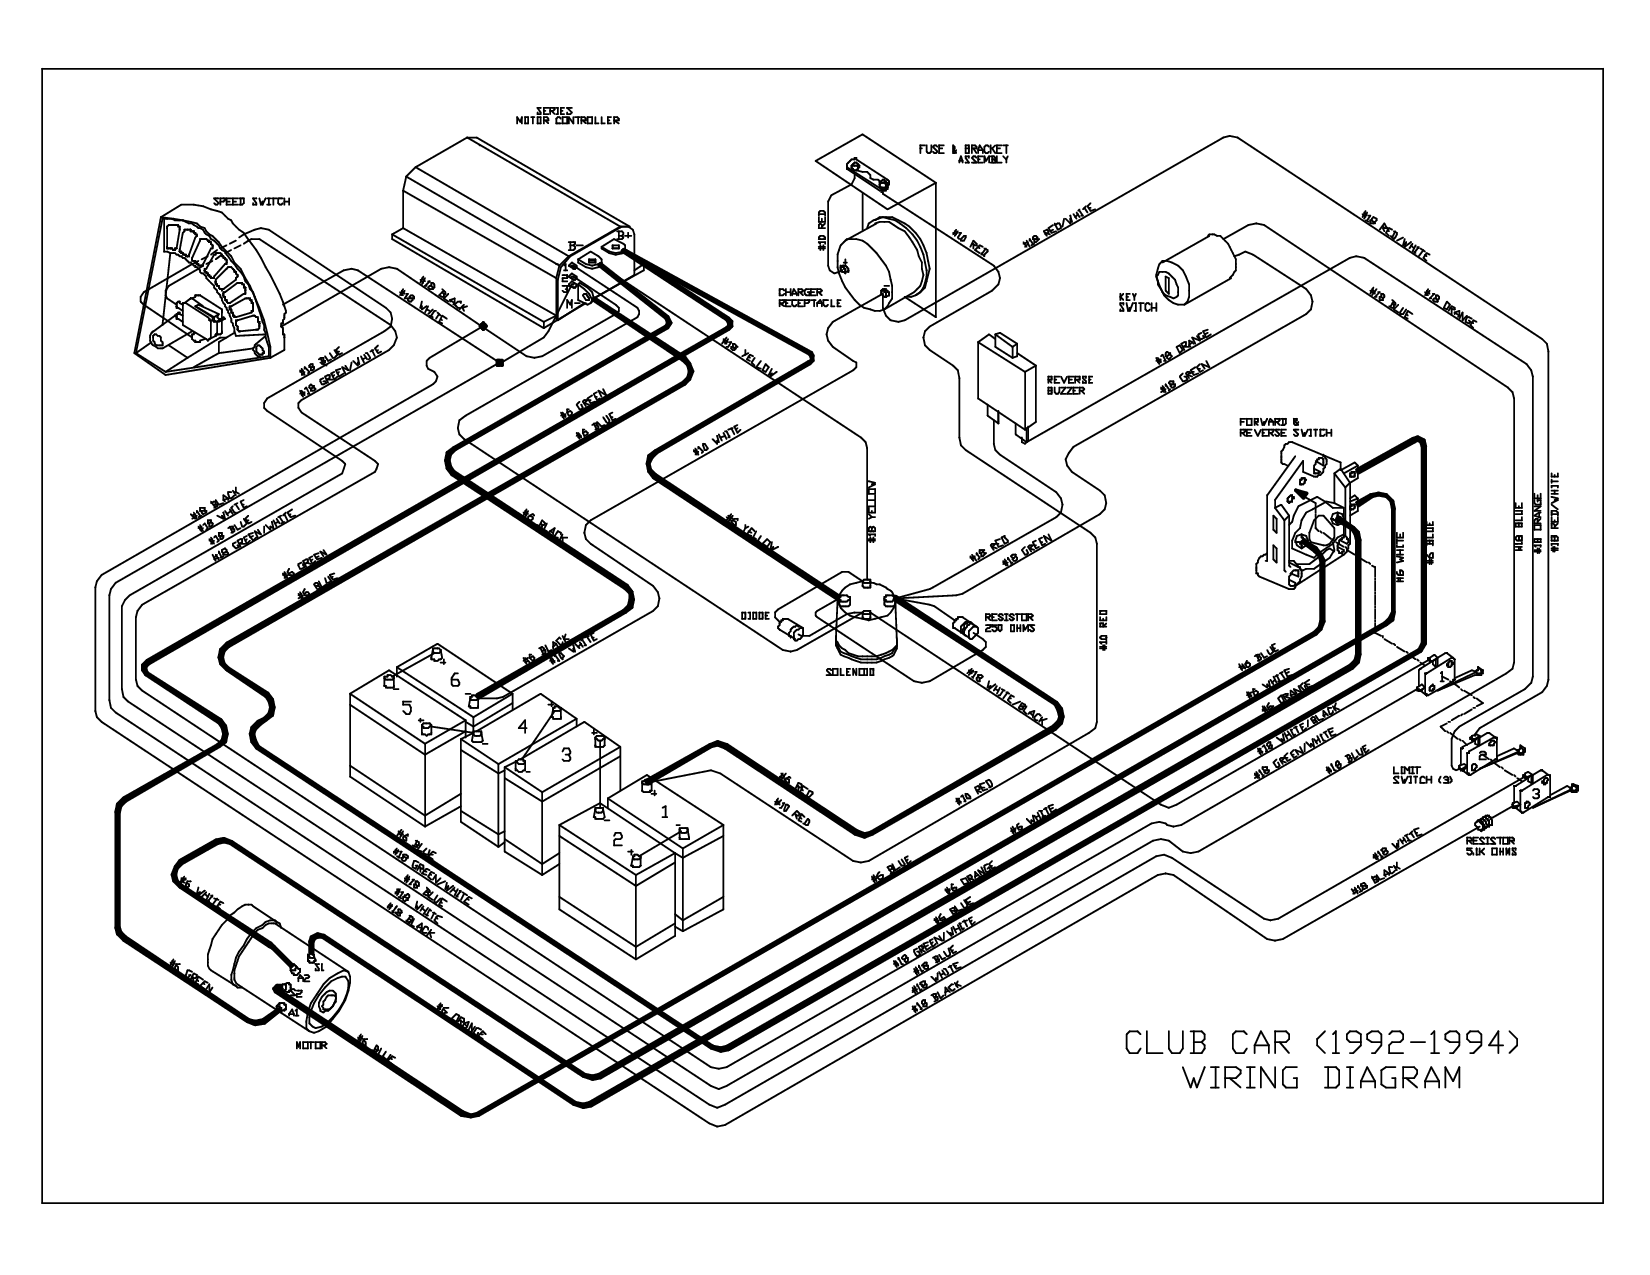 gas club car solenoid wiring diagram 1995 club car wiring diagram | club car (1992-1994) wiring ... club car solenoid wiring diagram for 2006